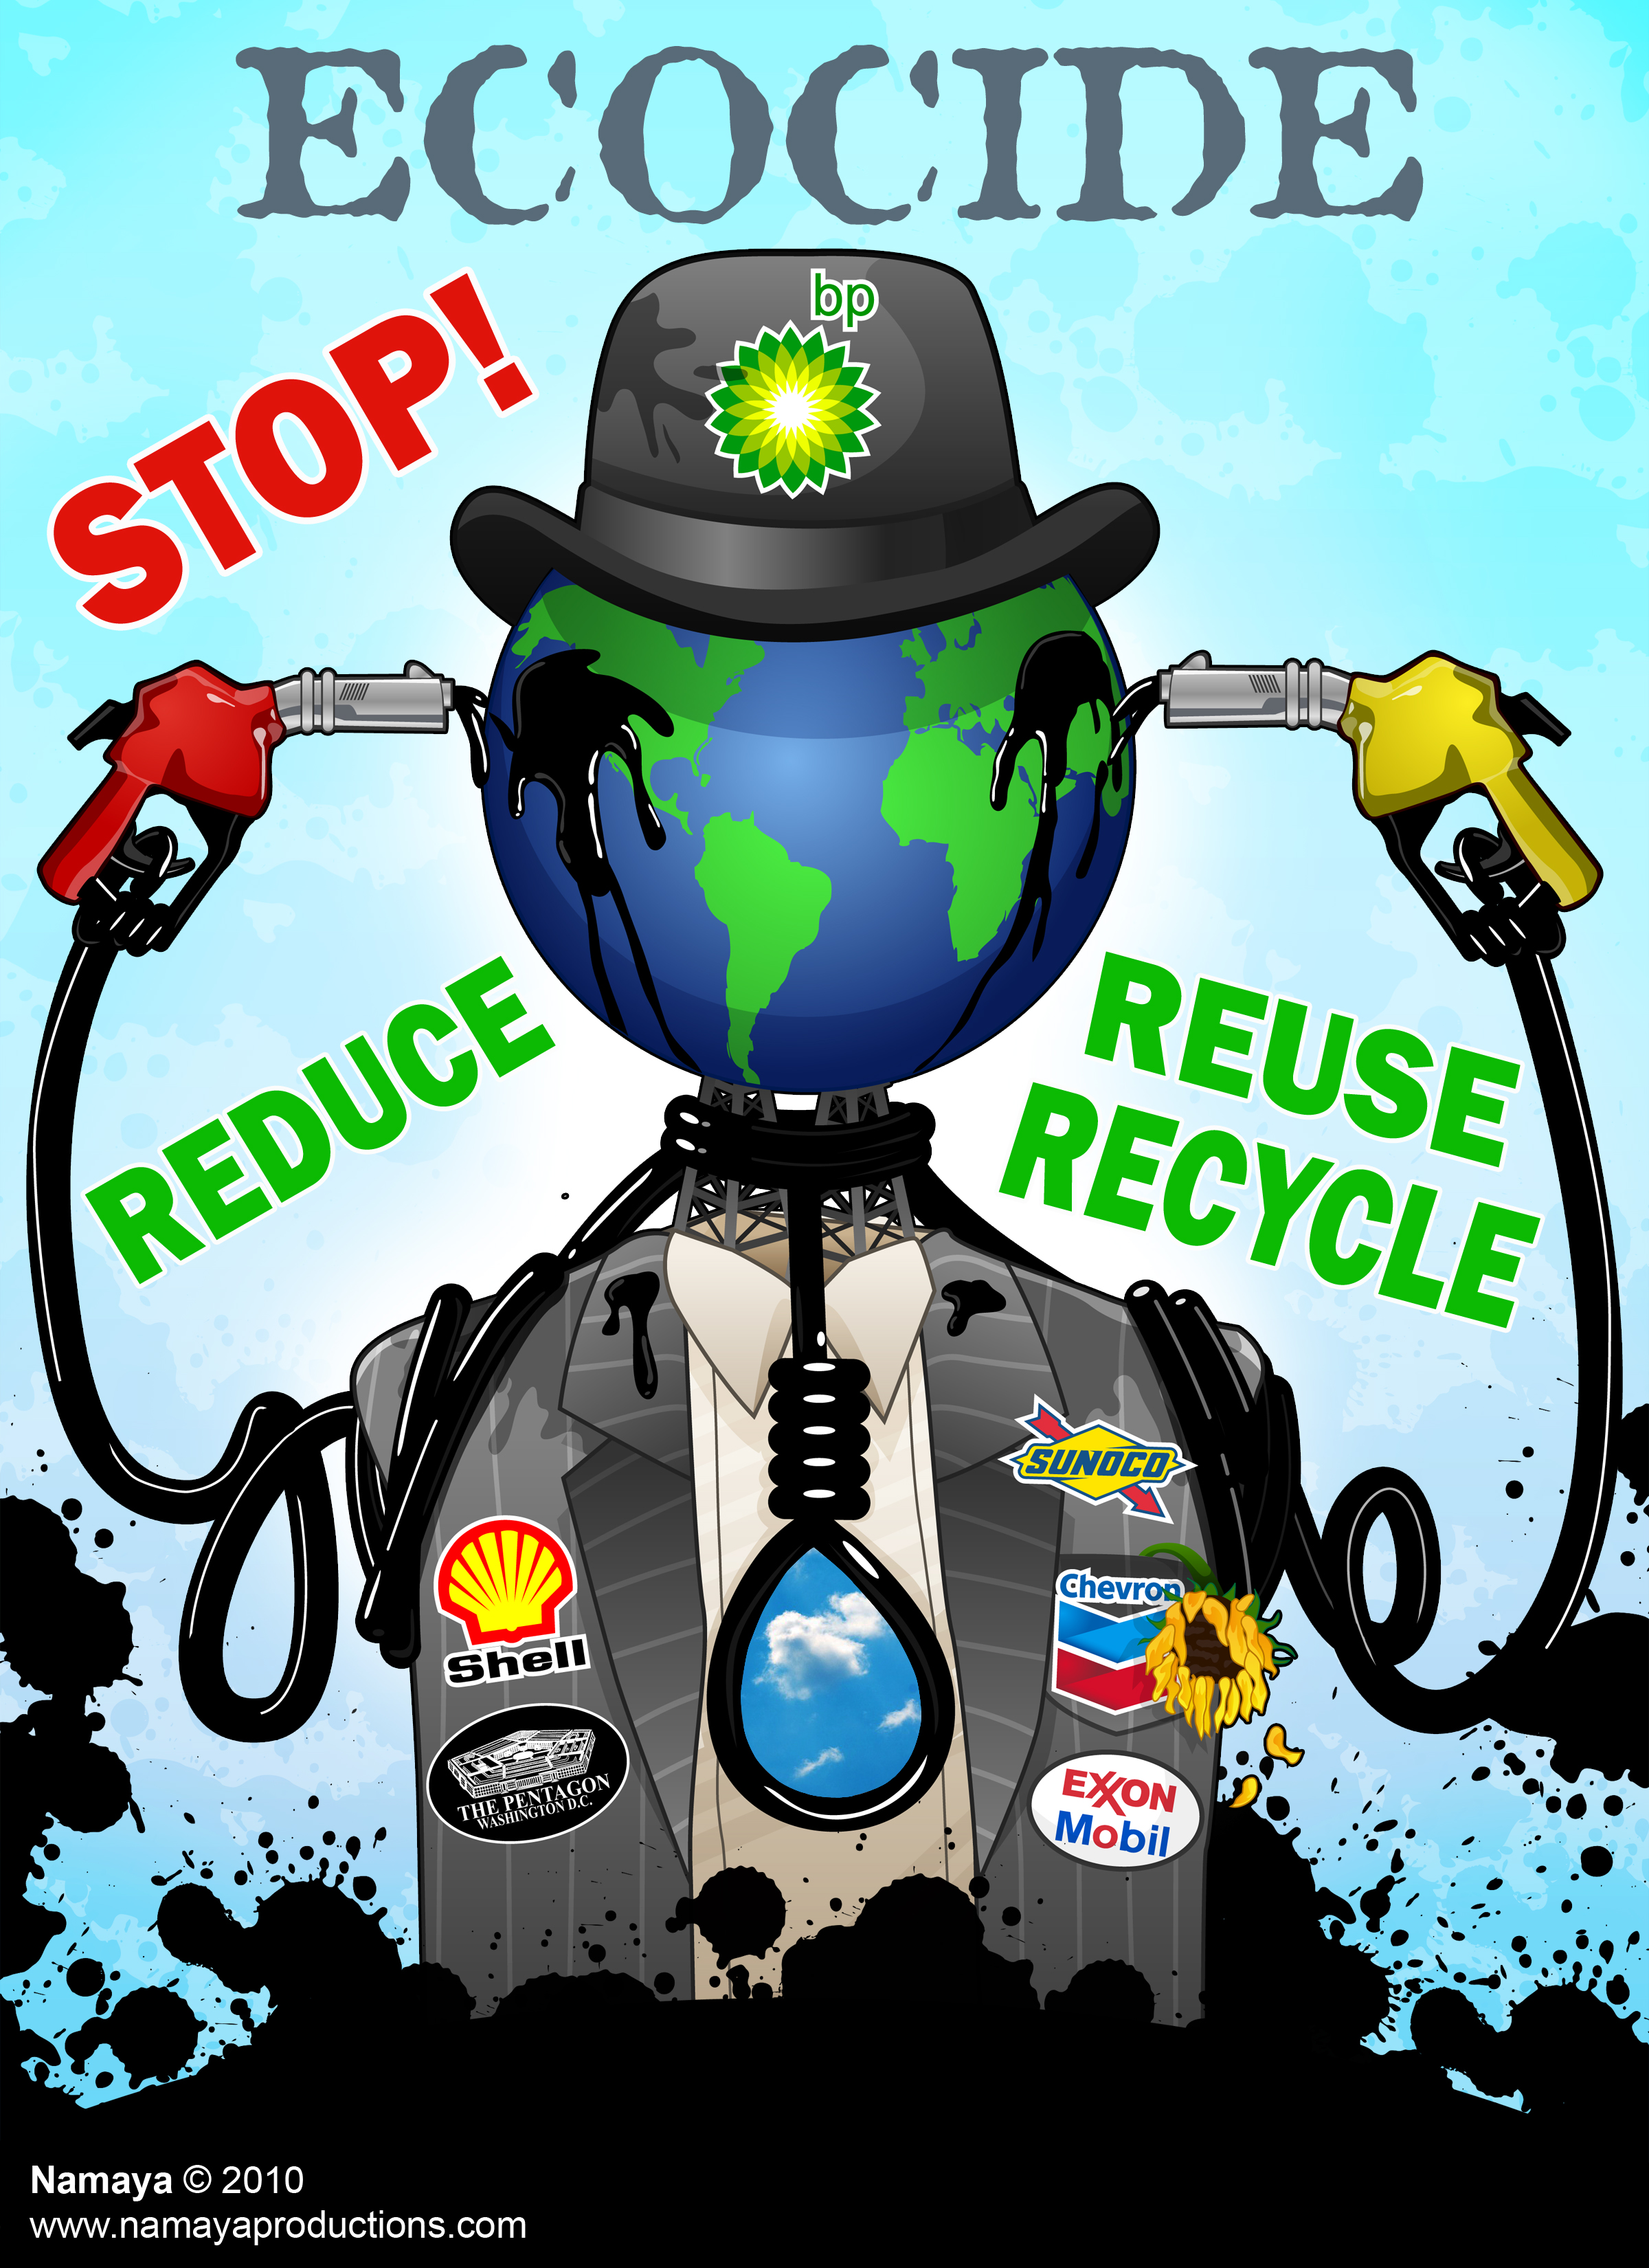 Ecocide_8x11 Stop Reduce and Reuse